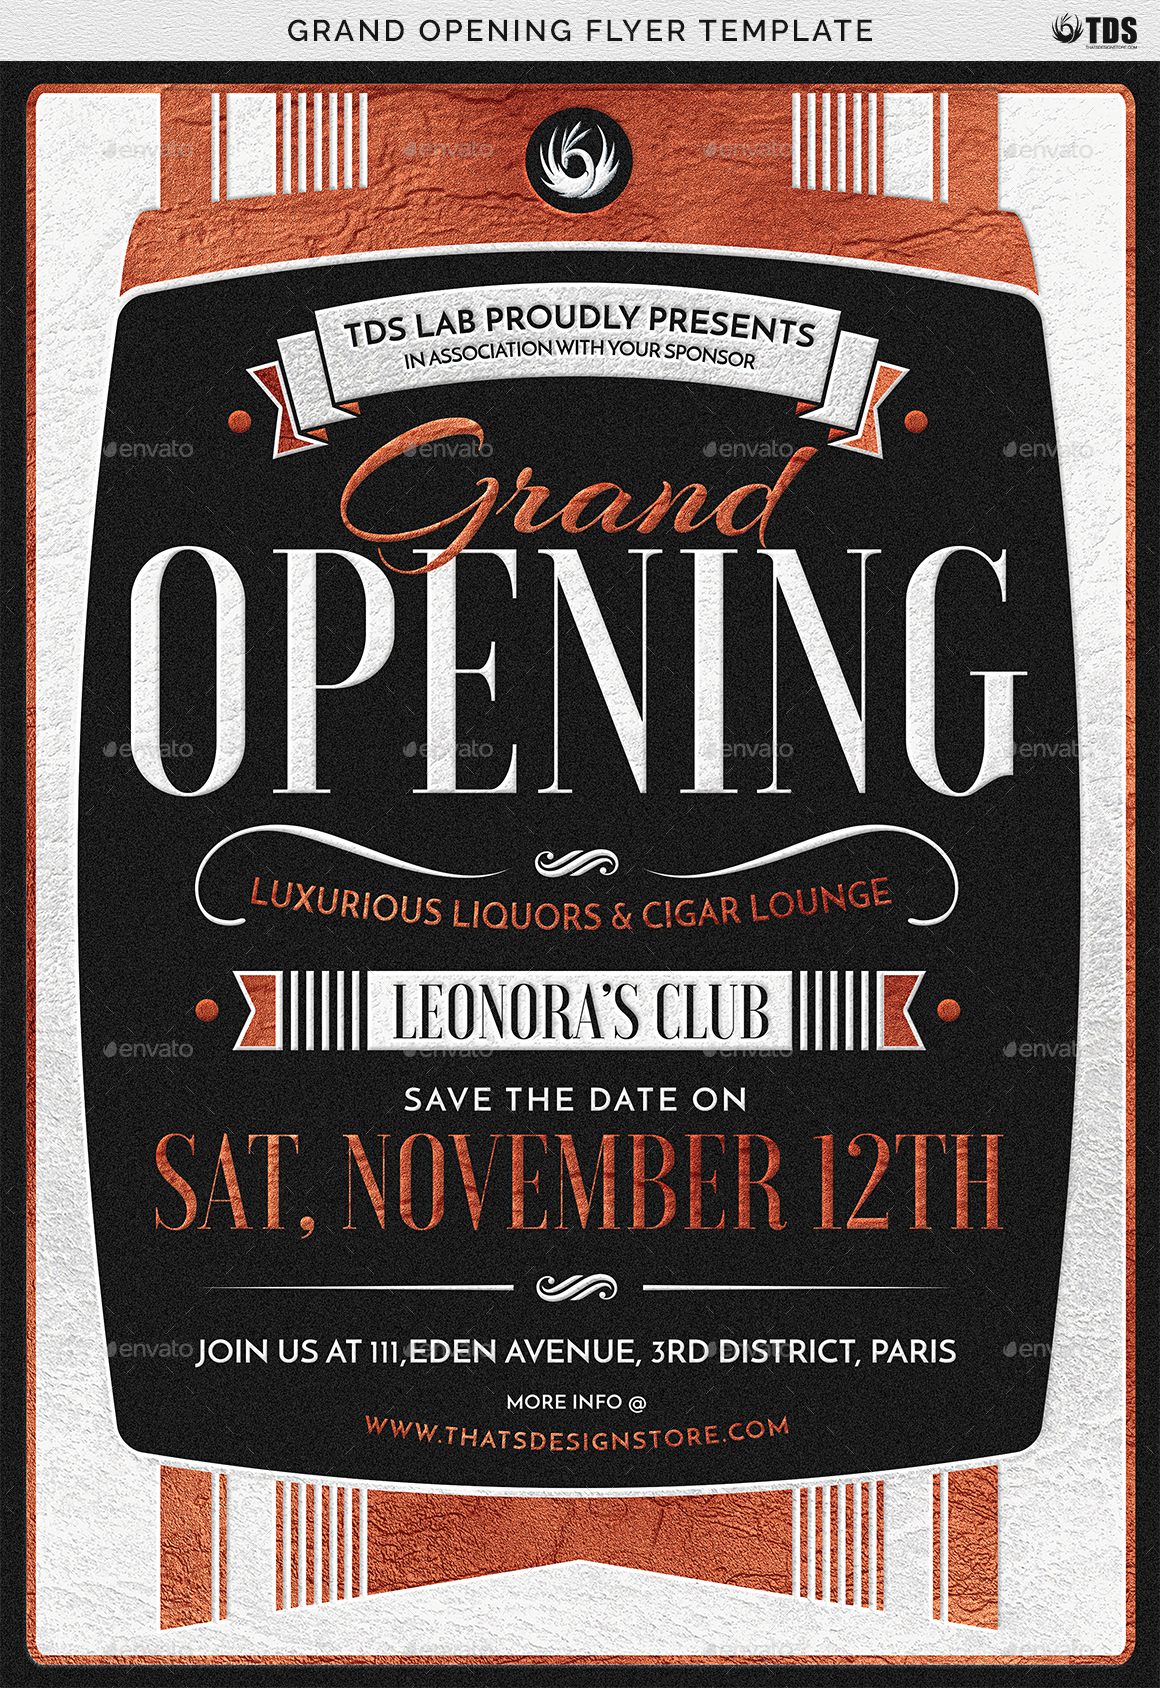 Grand Opening Flyer Template By Lou606 Graphicriver